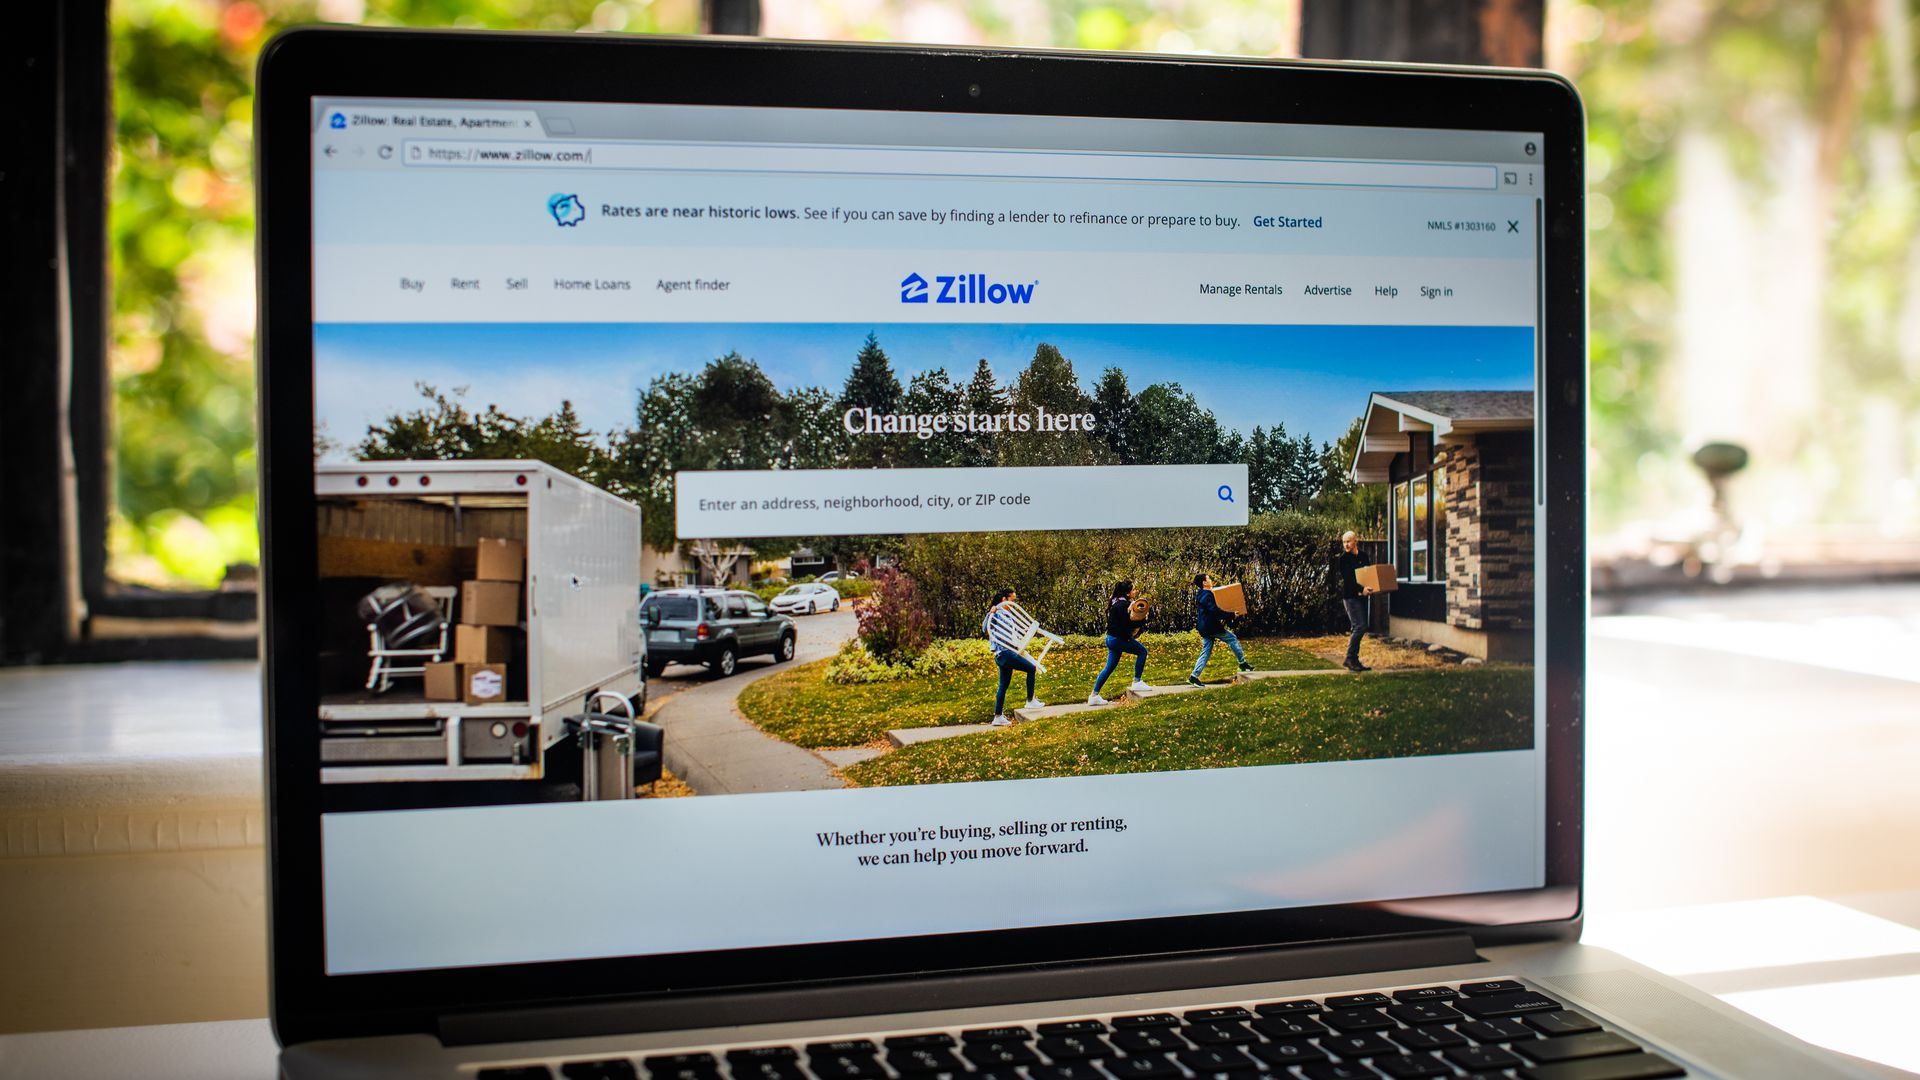 The Zillow website is a common way for people to find real estate for sale.